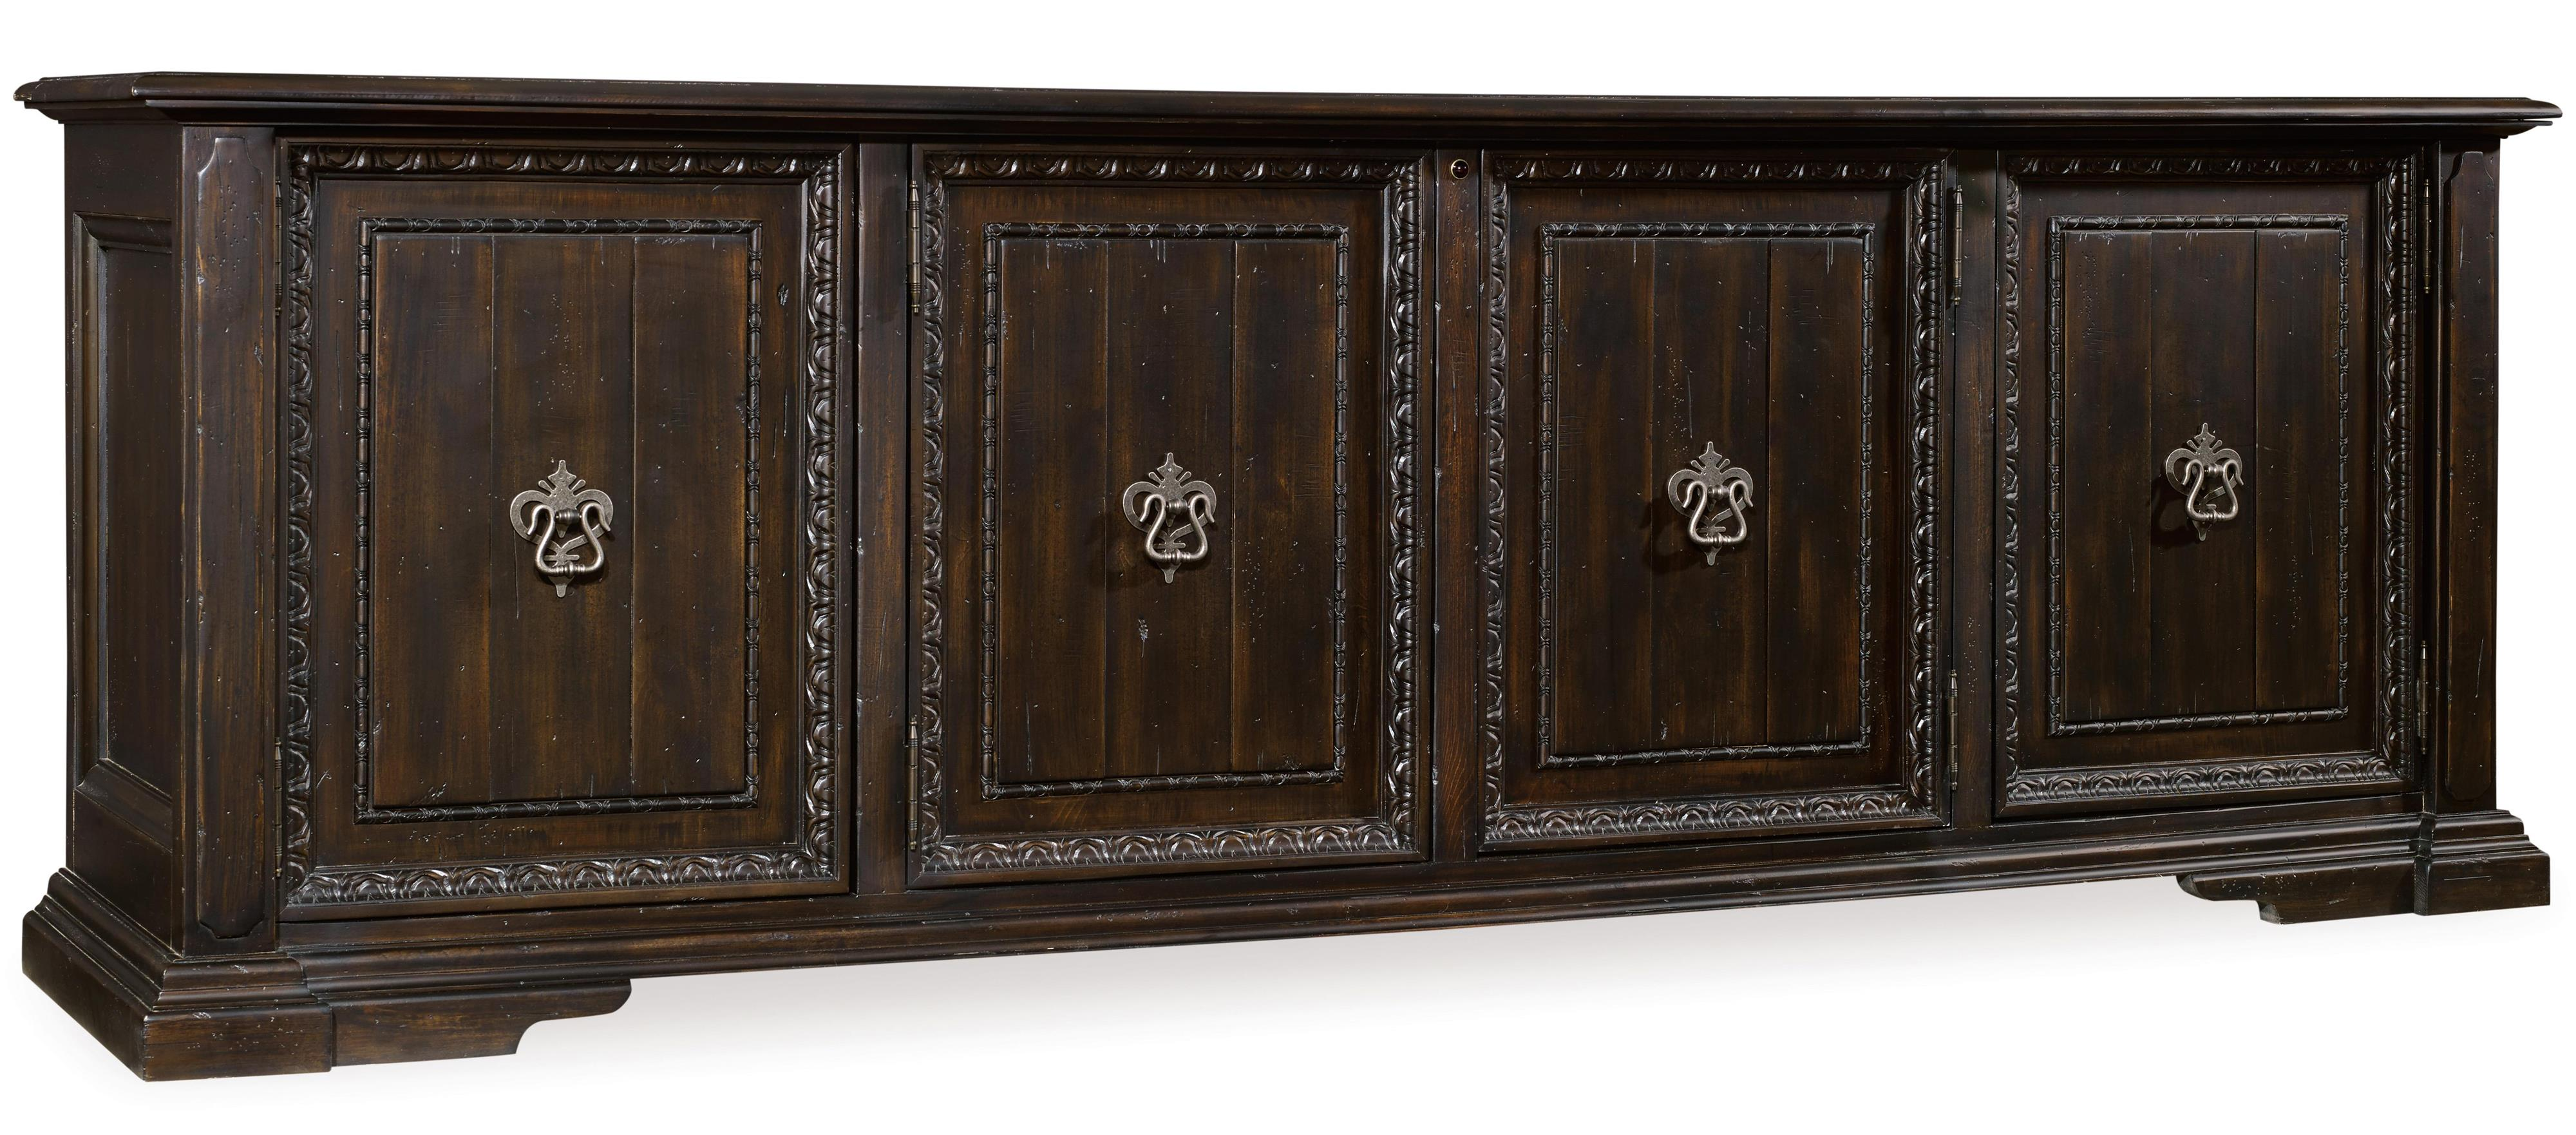 Treviso Entertainment Console by Hooker Furniture at Alison Craig Home Furnishings